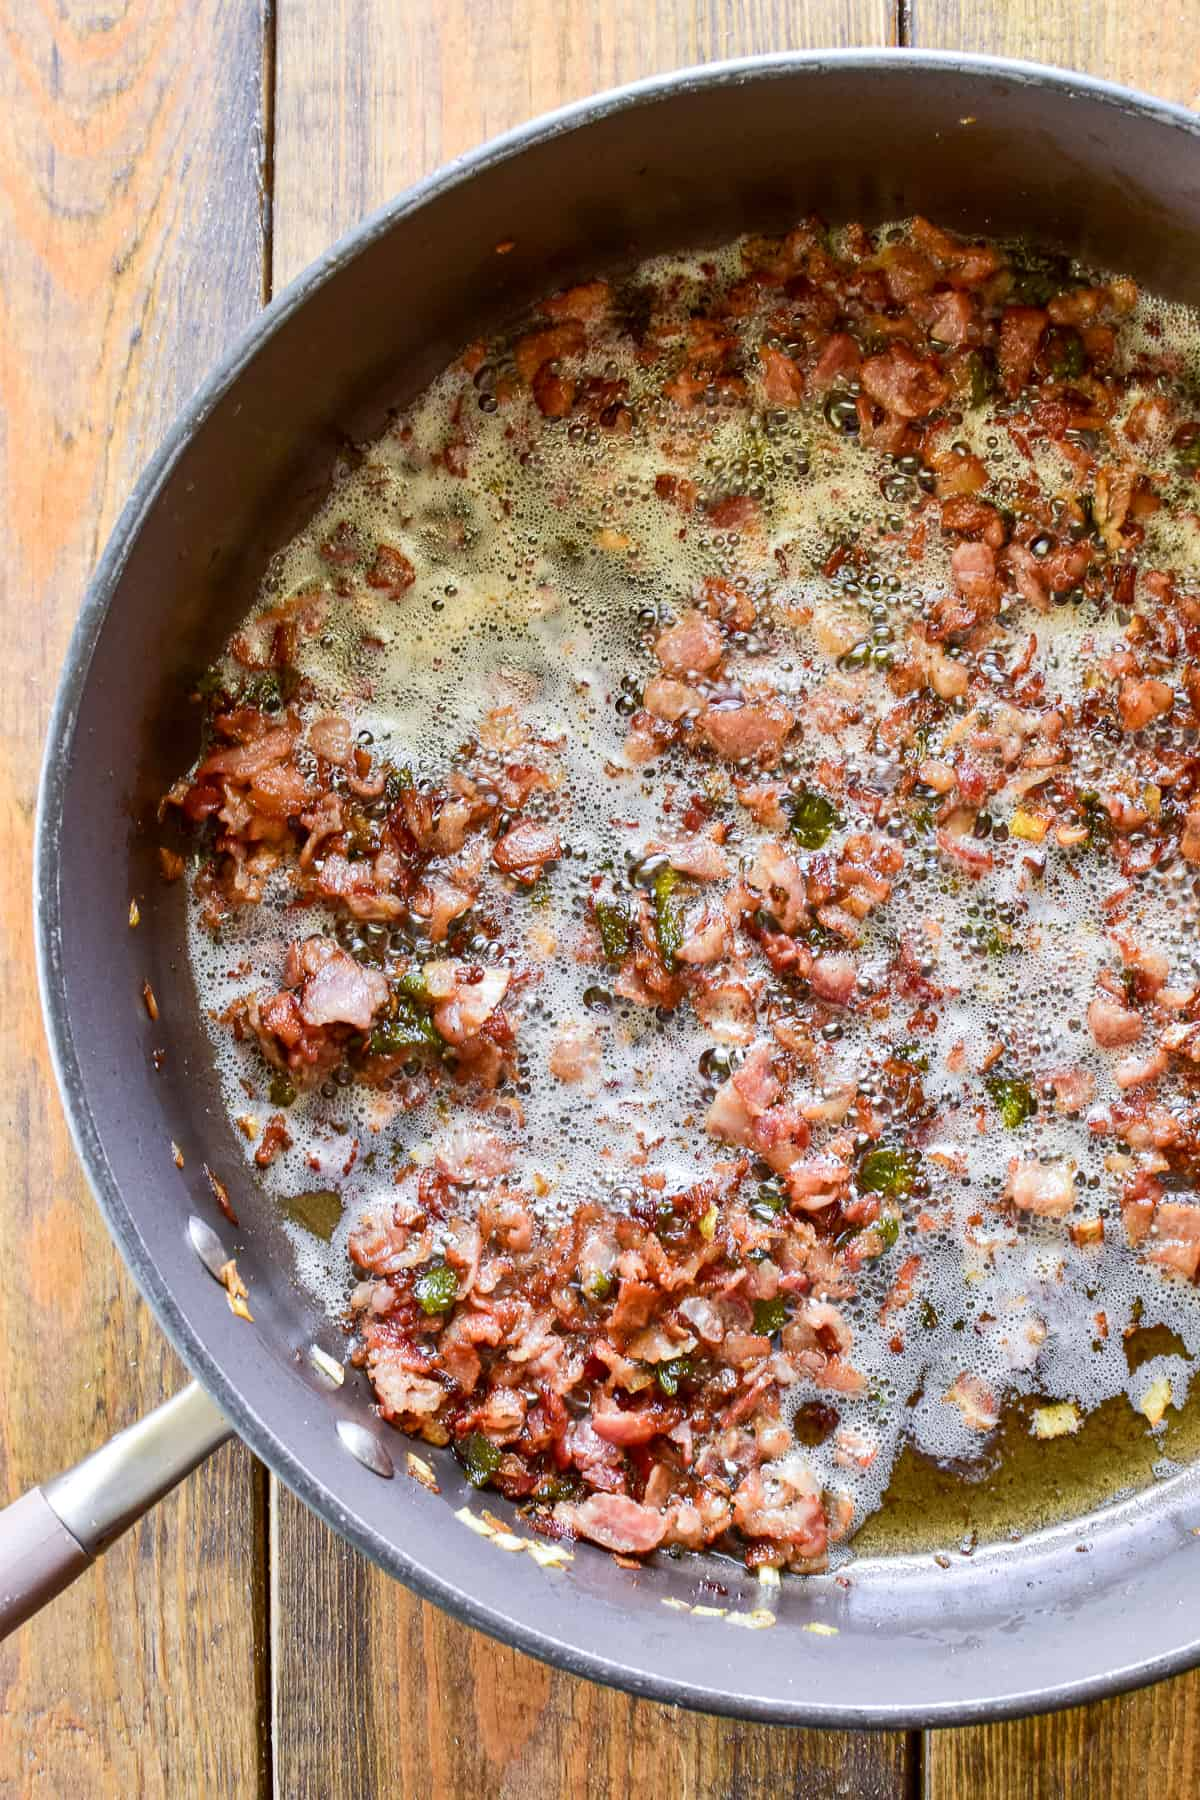 Bacon, leeks, and Poblano peppers frying in a skillet